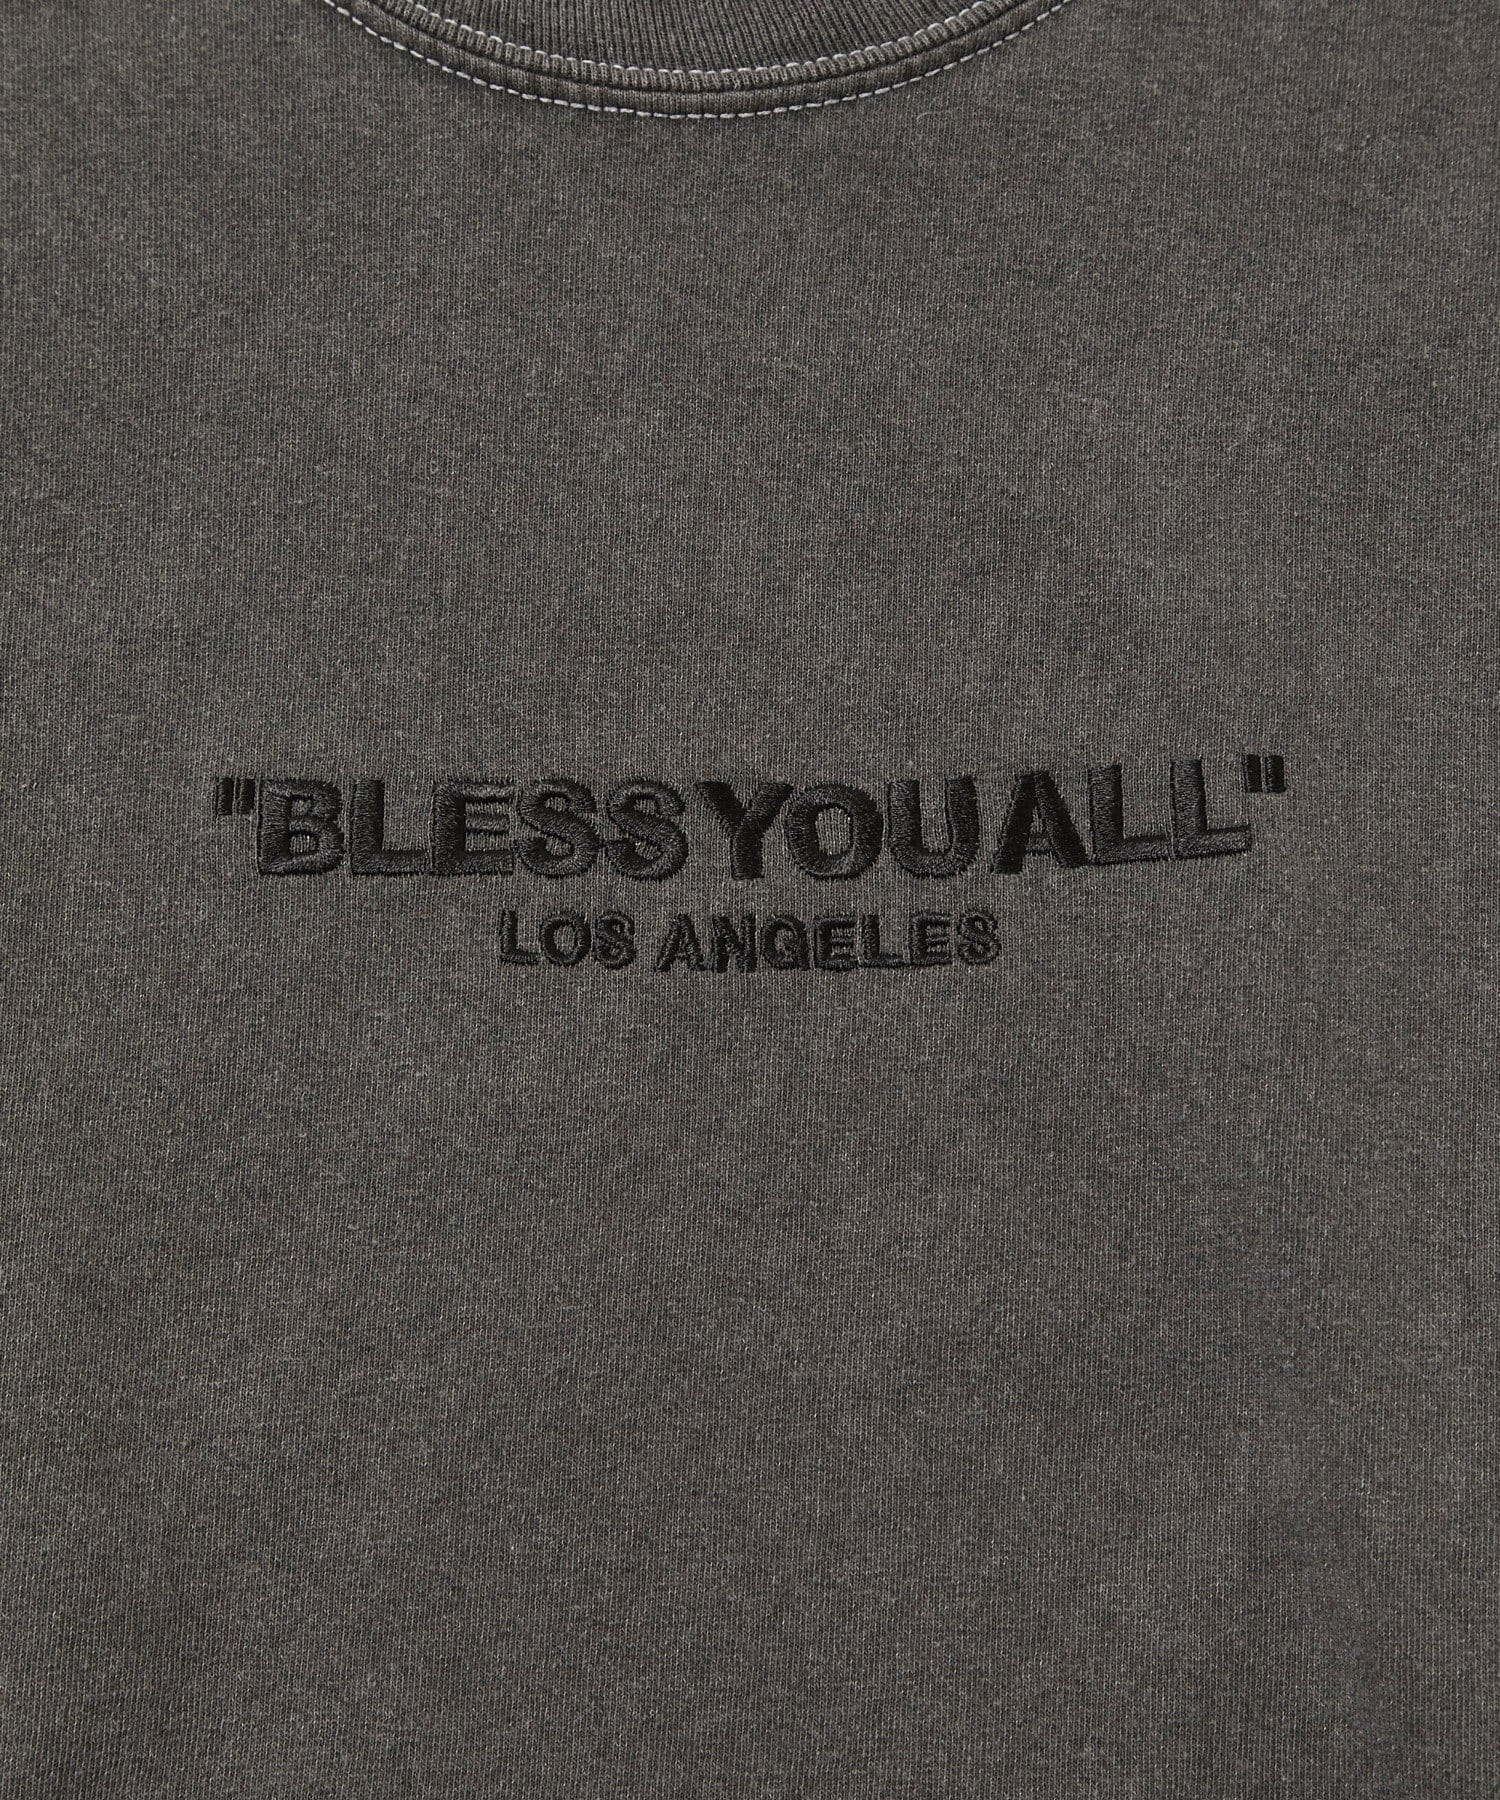 WHO'S WHO gallery(フーズフーギャラリー) 【BLESS YOU/ブレスユー】 ピグメント刺繍FAT LOGOロンT